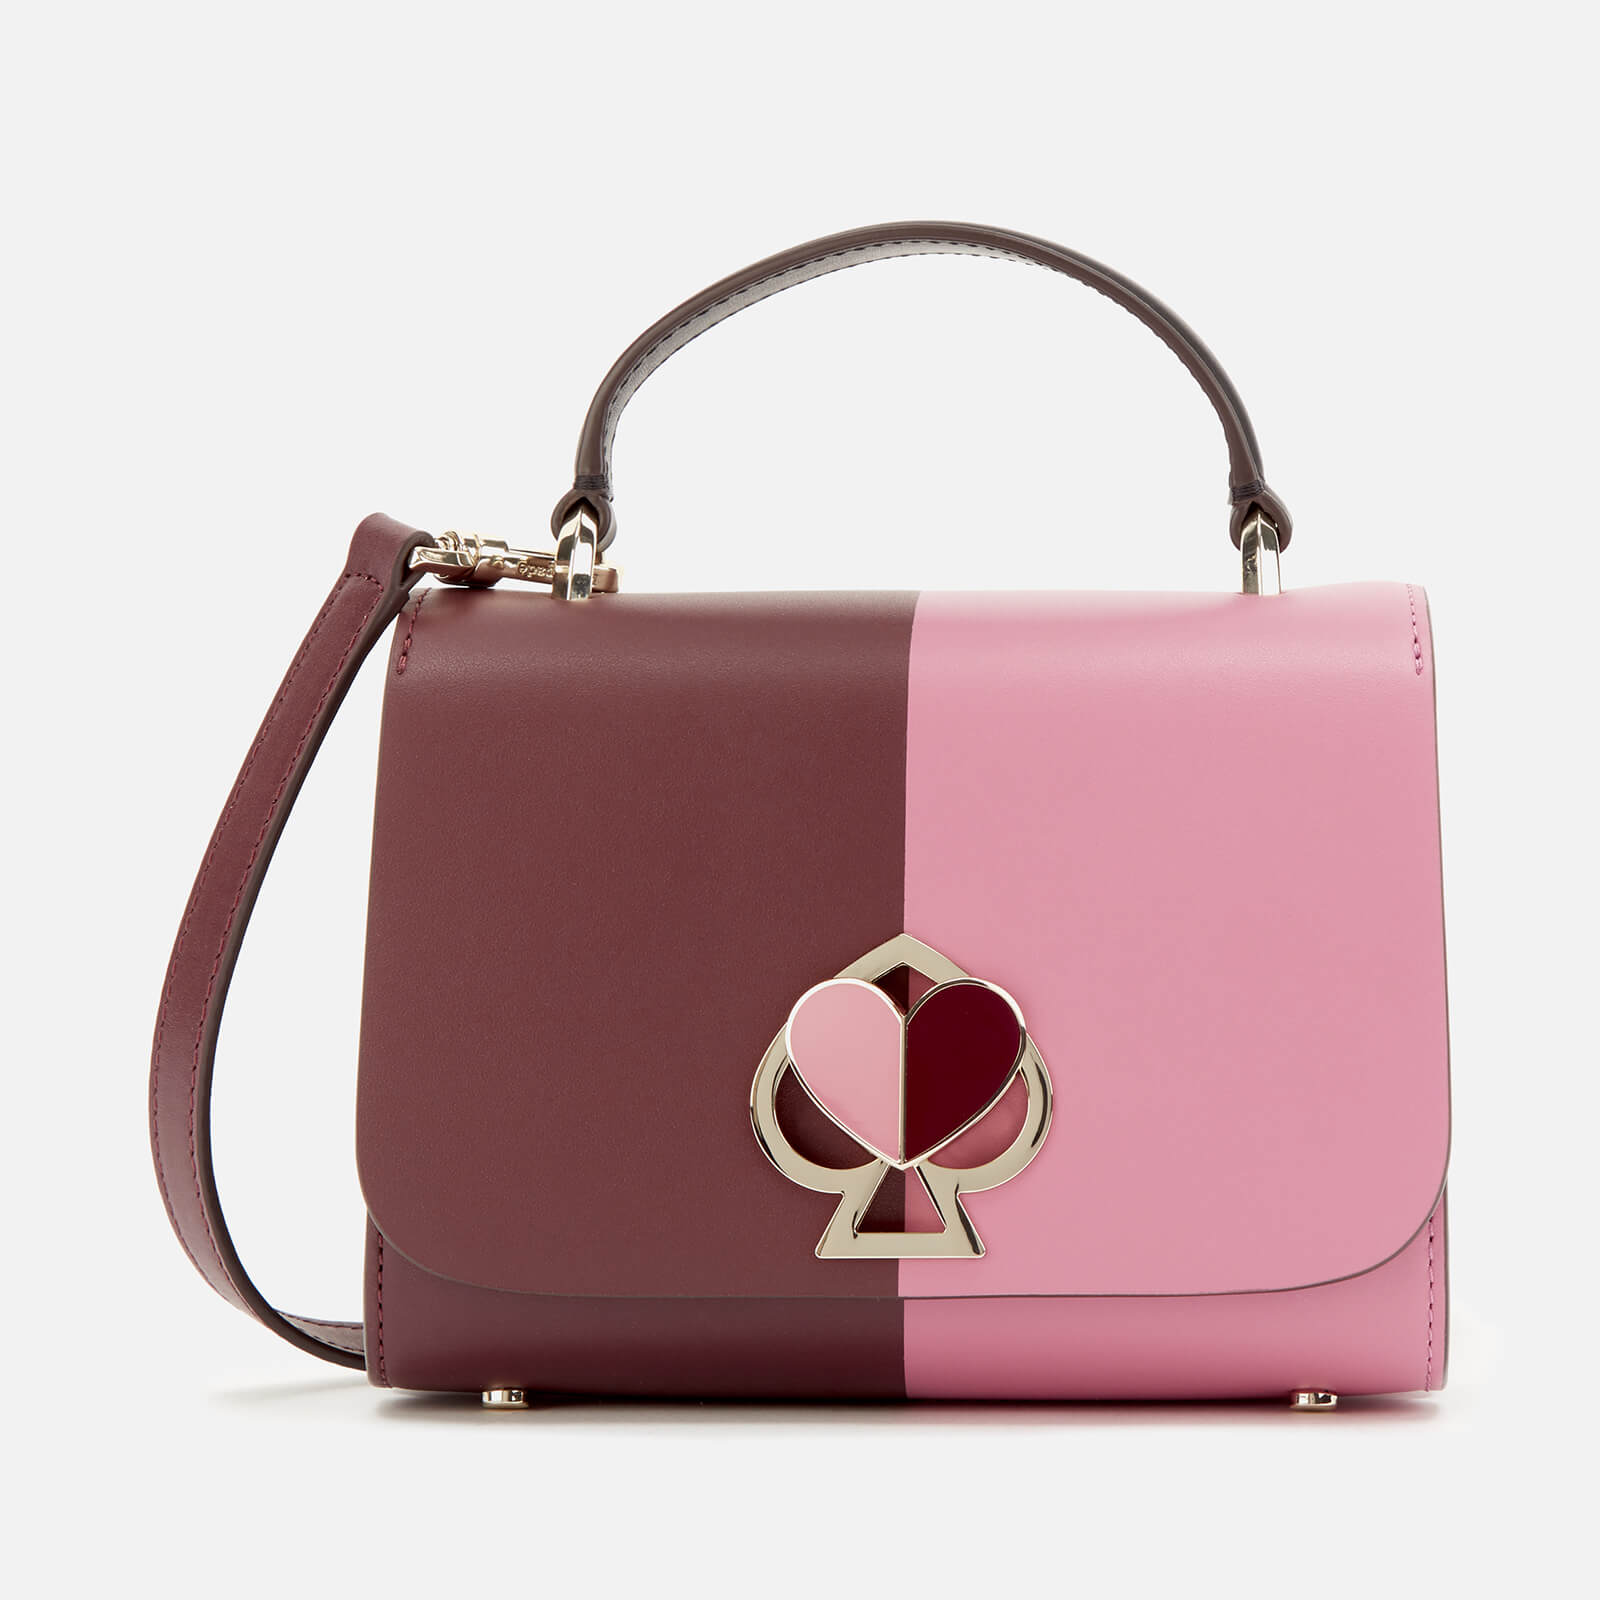 Kate Spade New York Women's Nicola Bicolor Twistlock Small Top Handle Bag - Cherry 原價395英鎊 優惠價237